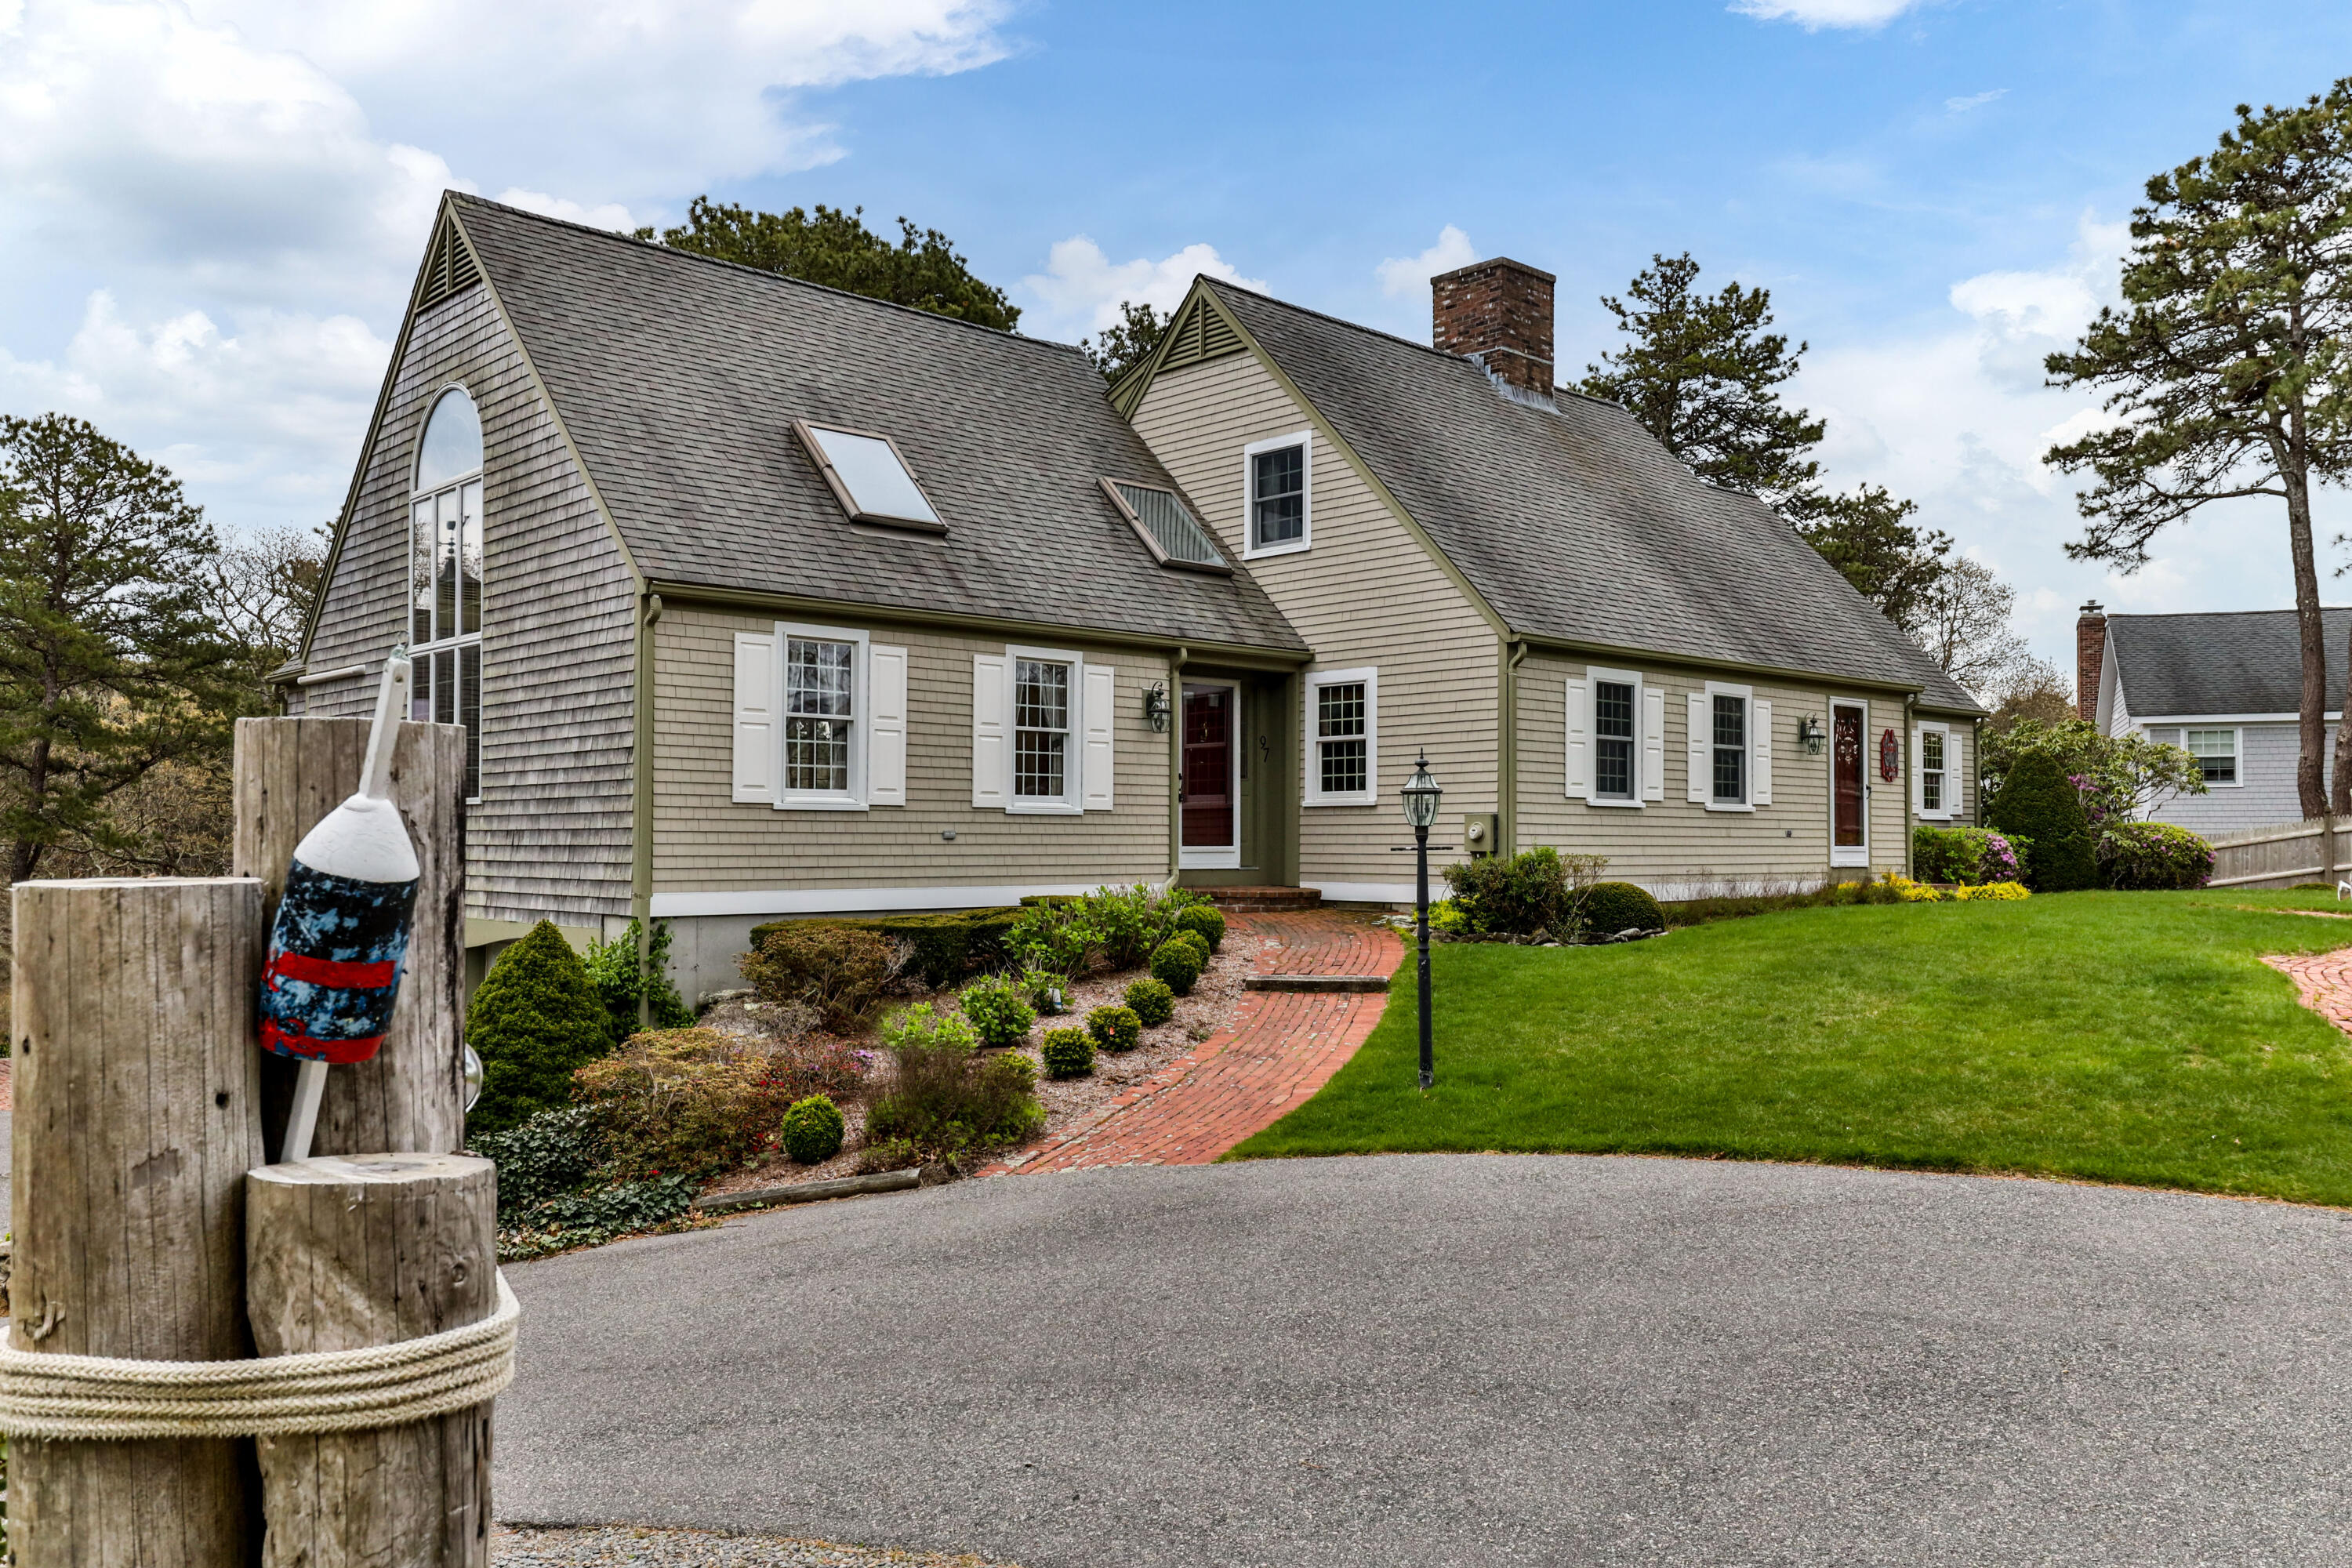 click to view more details 97 Canoe Pond Drive, Brewster, MA 02631